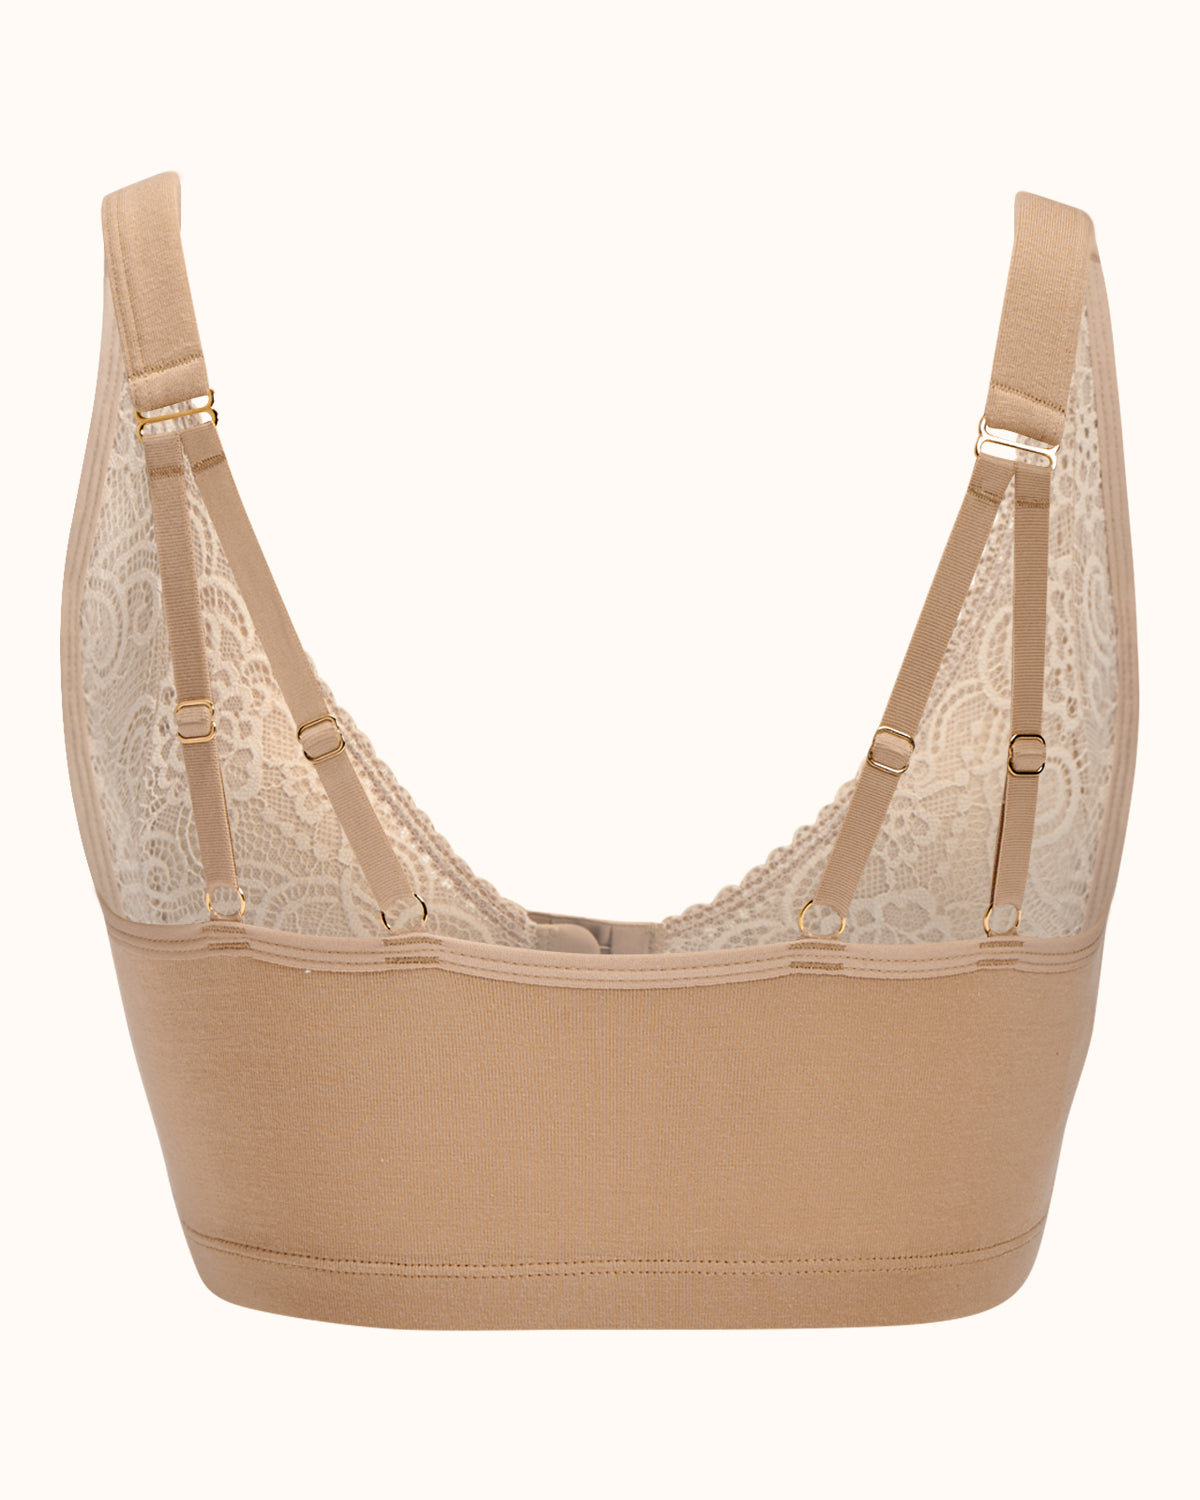 Champagne, pocketed front closure lace bra made with soft modal, dual adjustable back straps and underwire free cups.